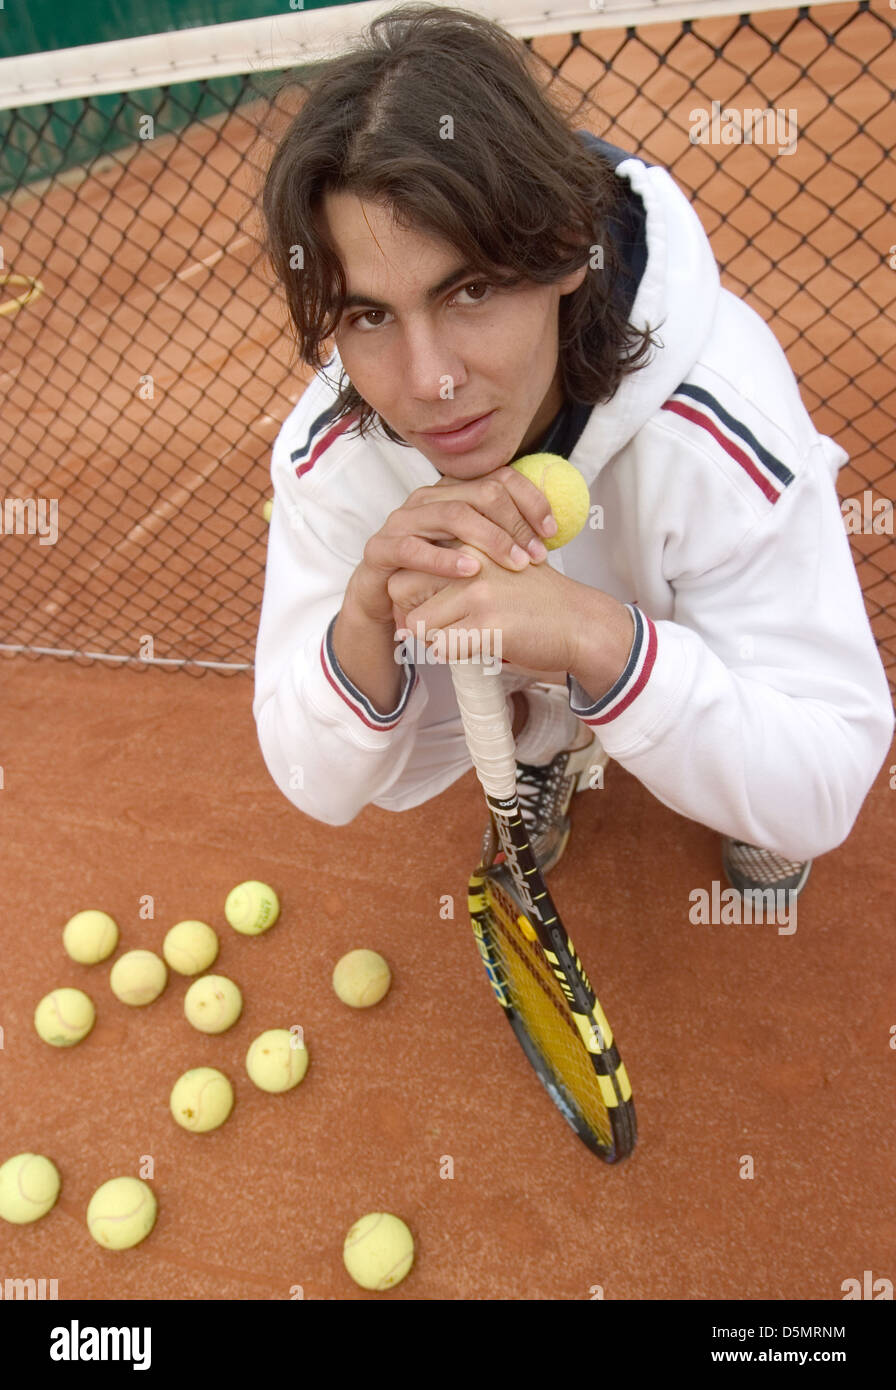 Rafa Nadal Pose After His Training Session At His Birthplace Tennis Stock Photo Alamy